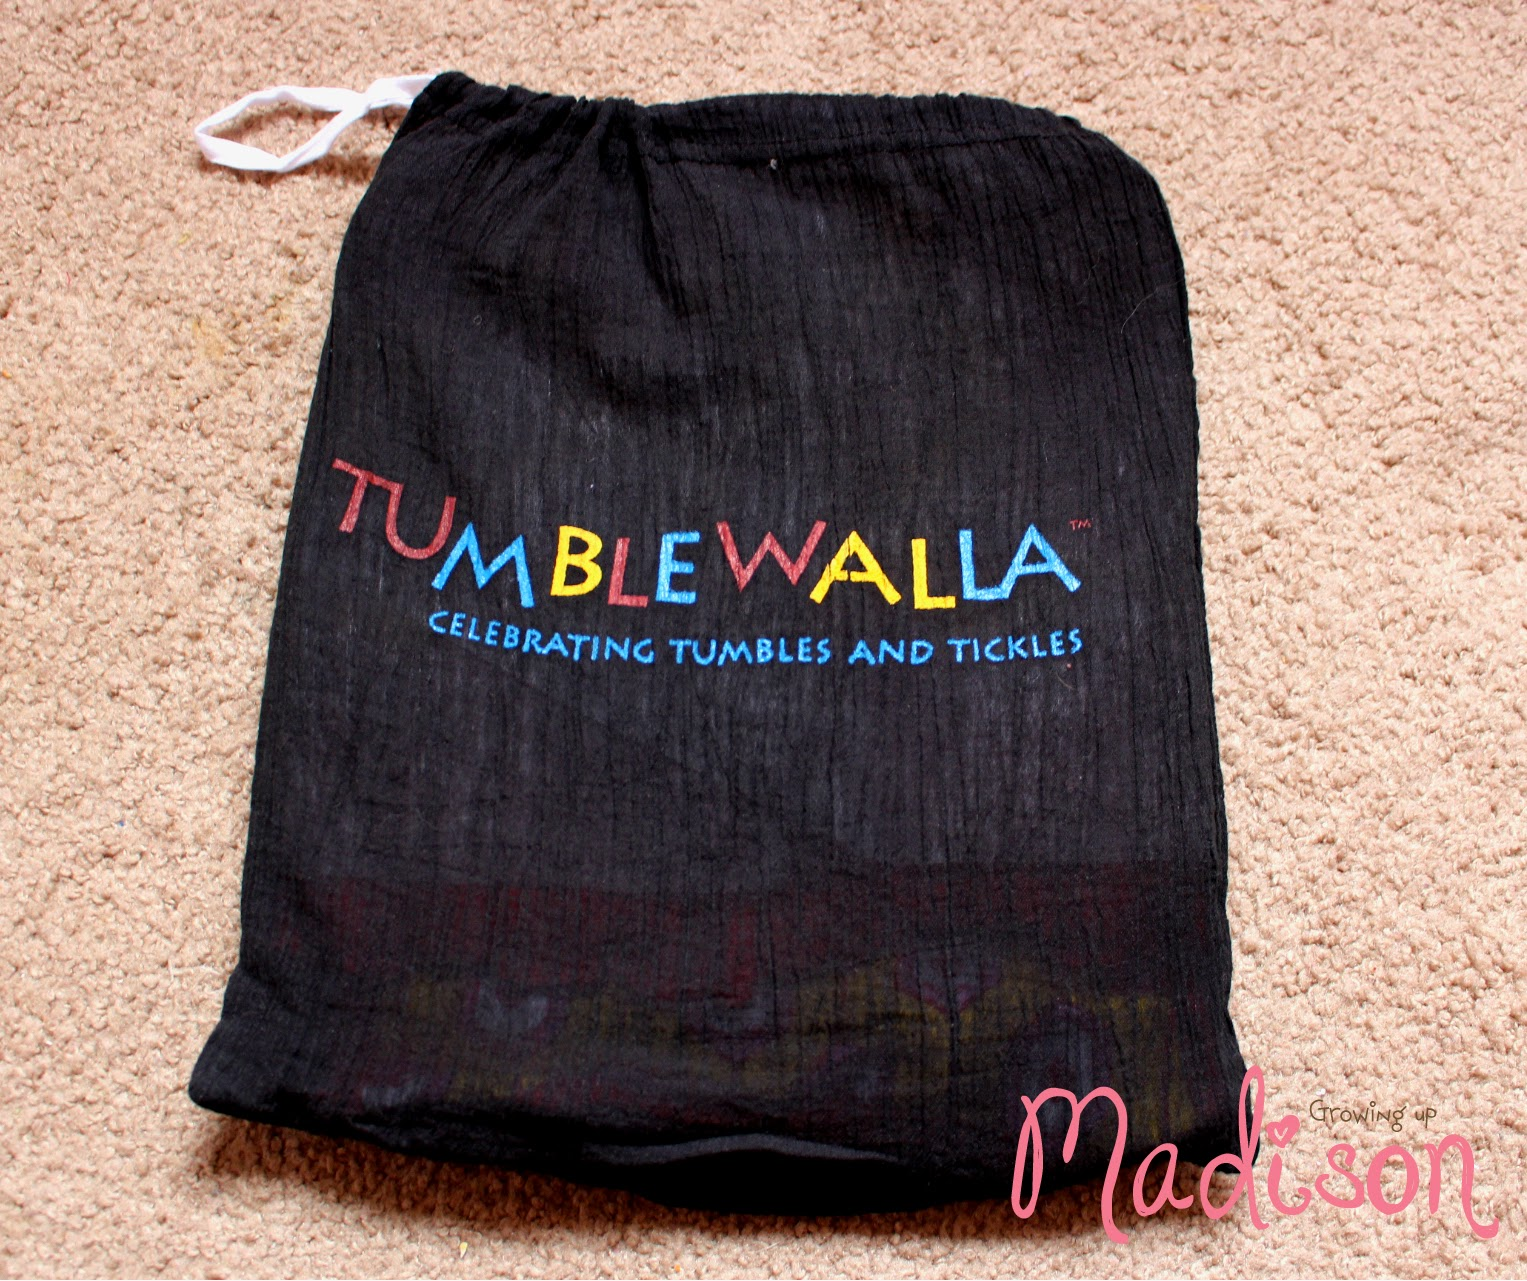 Celebrate Tumbles And Tickles With Tumblewalla Review